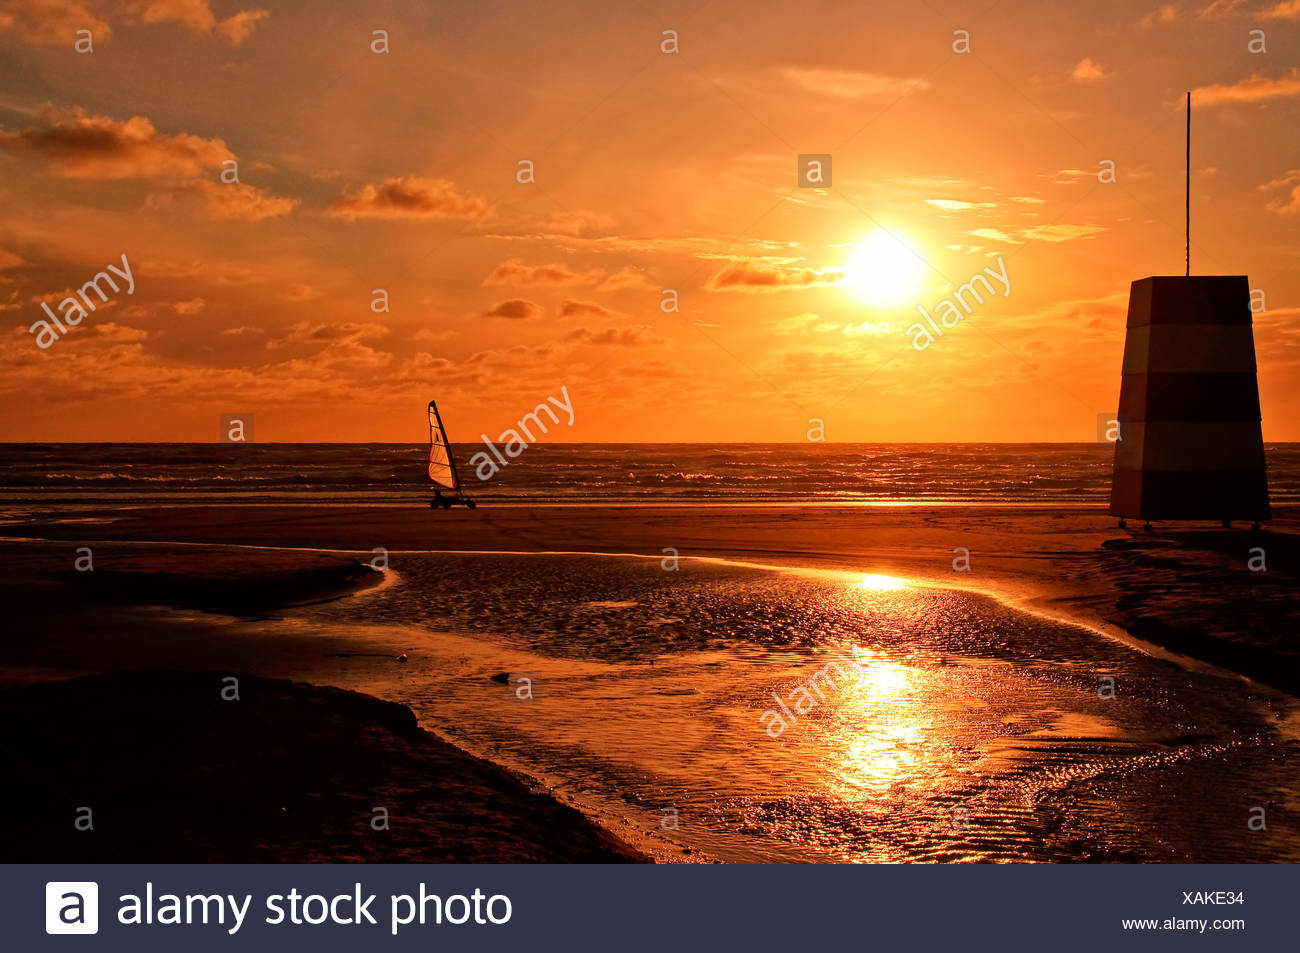 Beach, sunet, lifeguard tower and a beach boogie - Stock Image